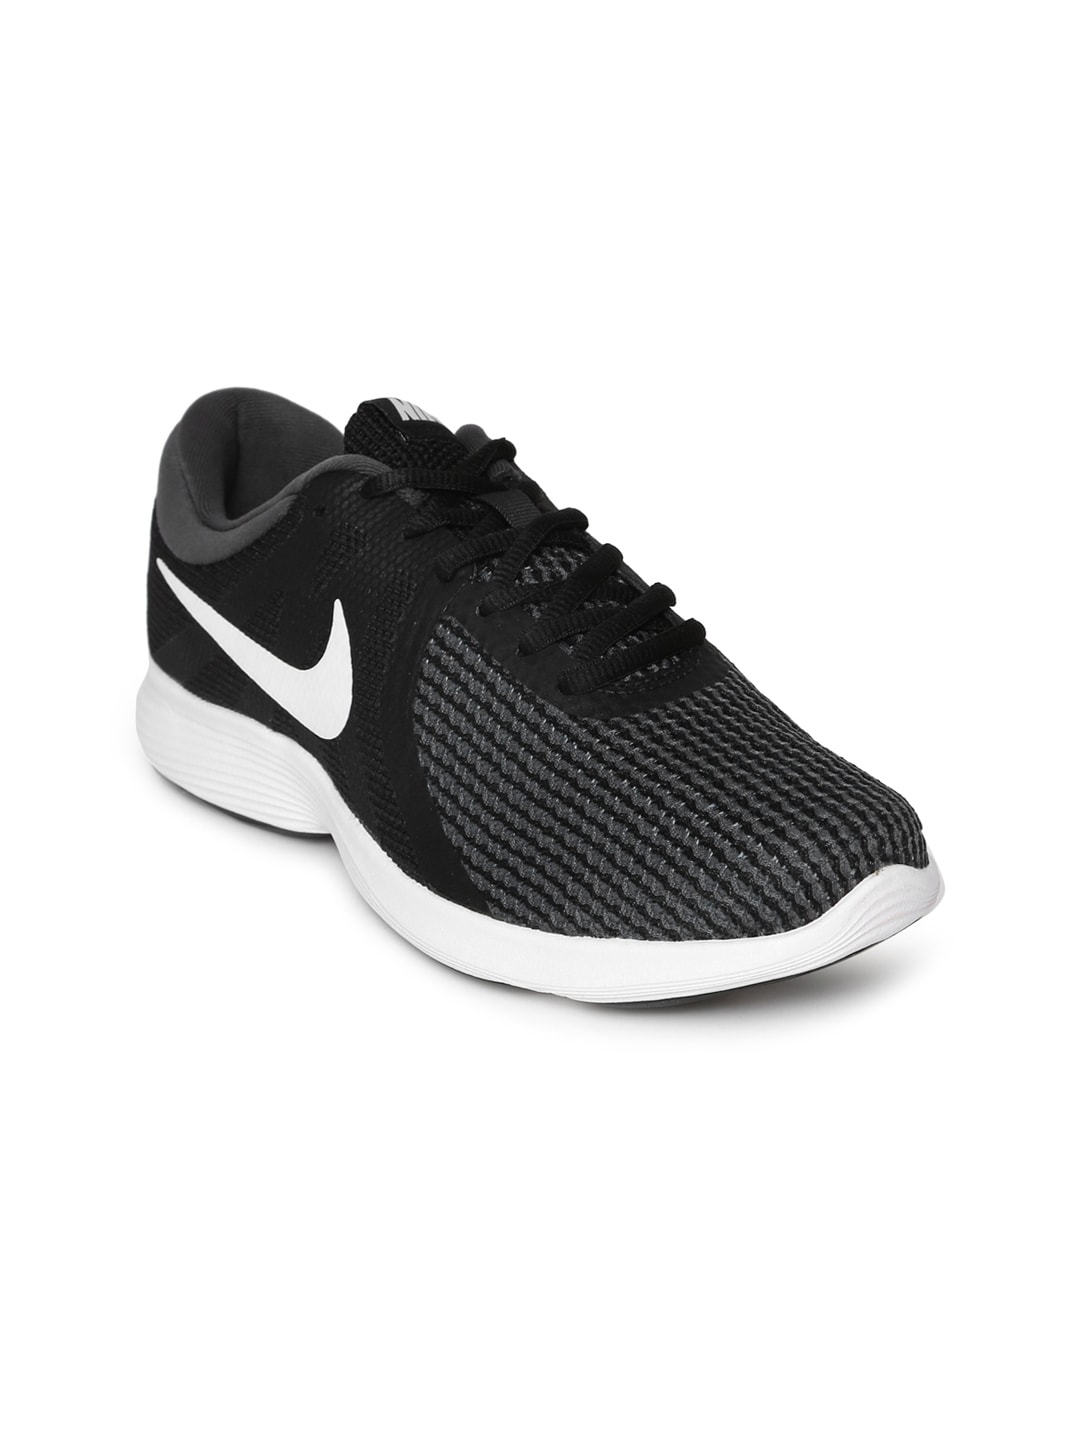 dfed2502c05c Nike Black REVOLUTION 4 Running Shoes for women - Get stylish shoes ...